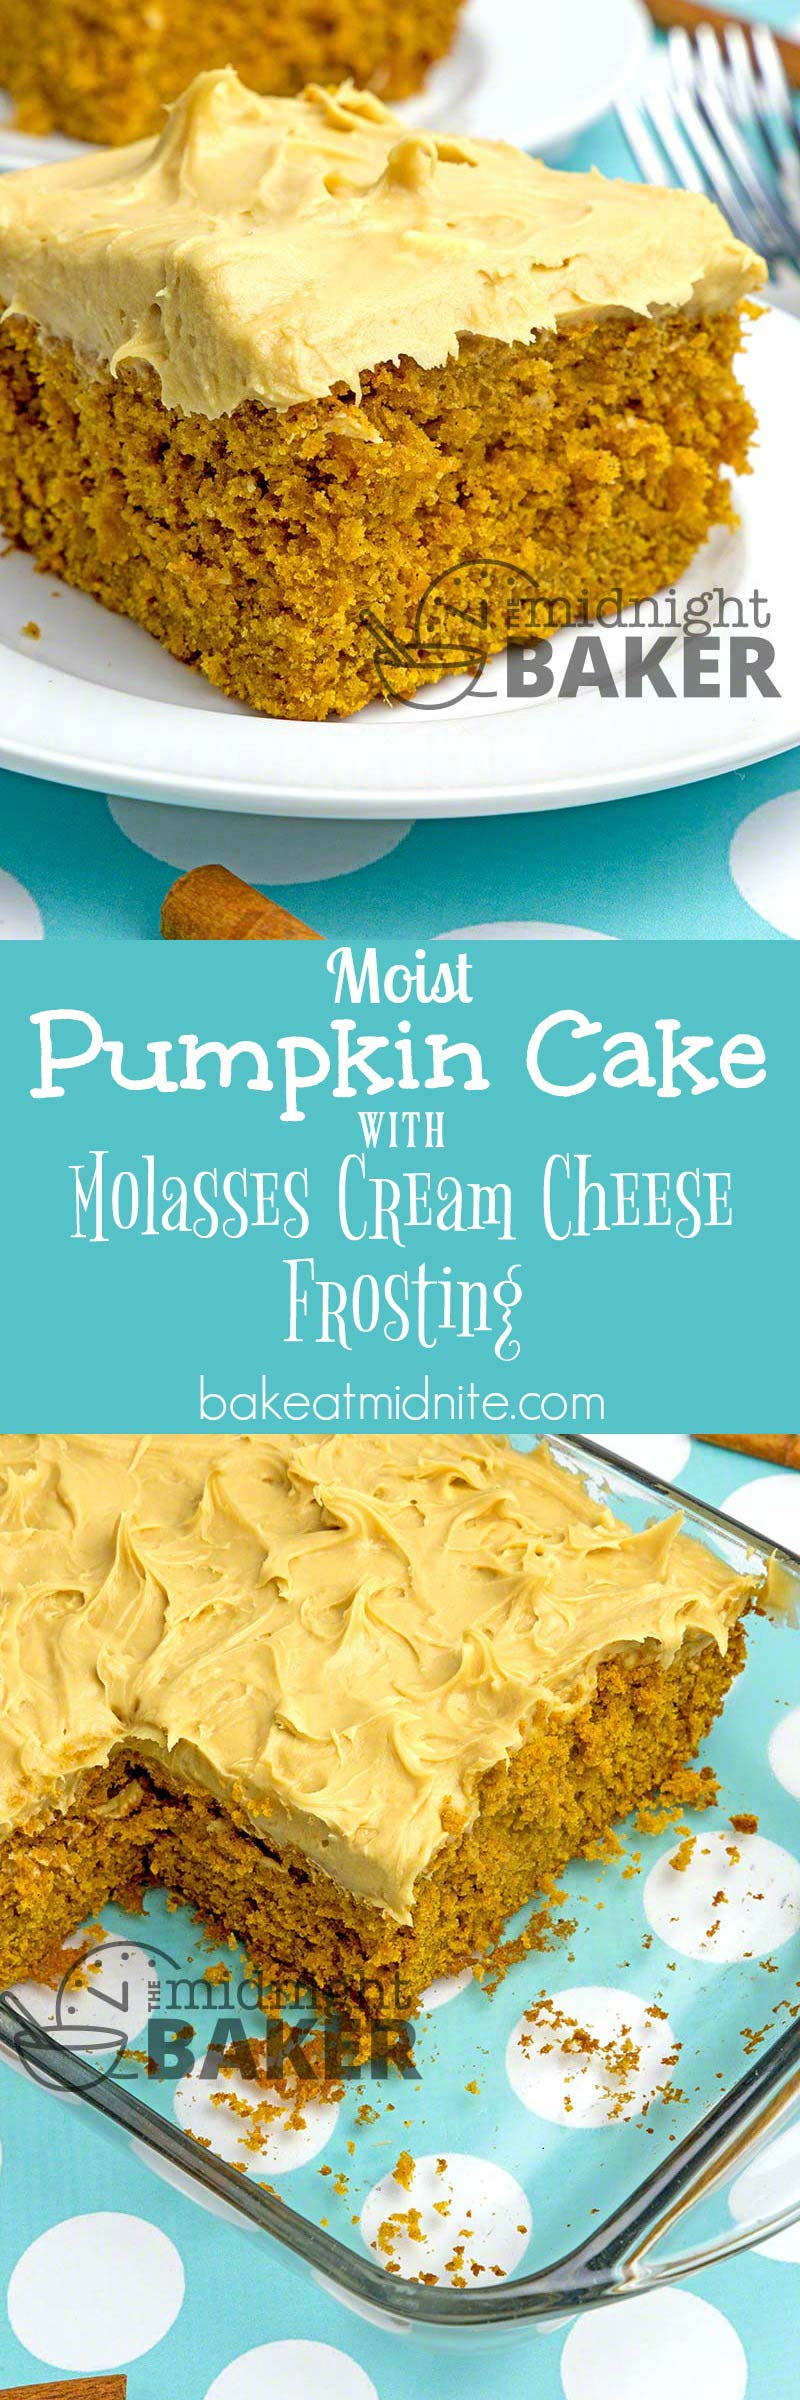 This moist pumpkin cake gets even better when topped with this delicious and delicately flavored molasses cream cheese frosting.